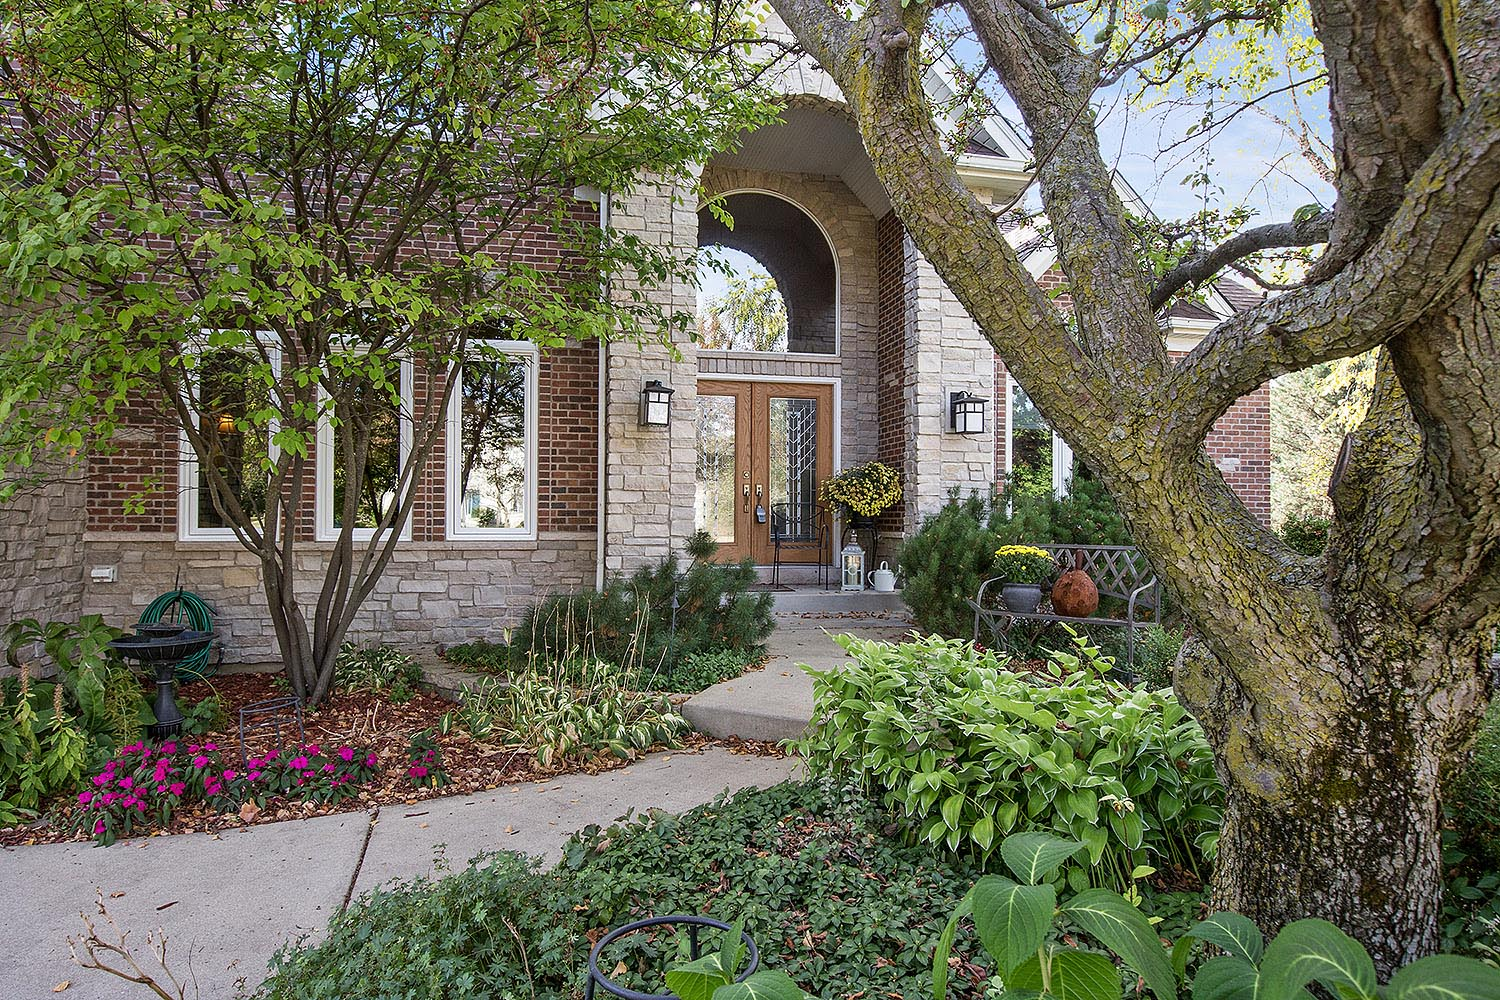 939 000 4211 delaware ct in naperville river run 5 beds